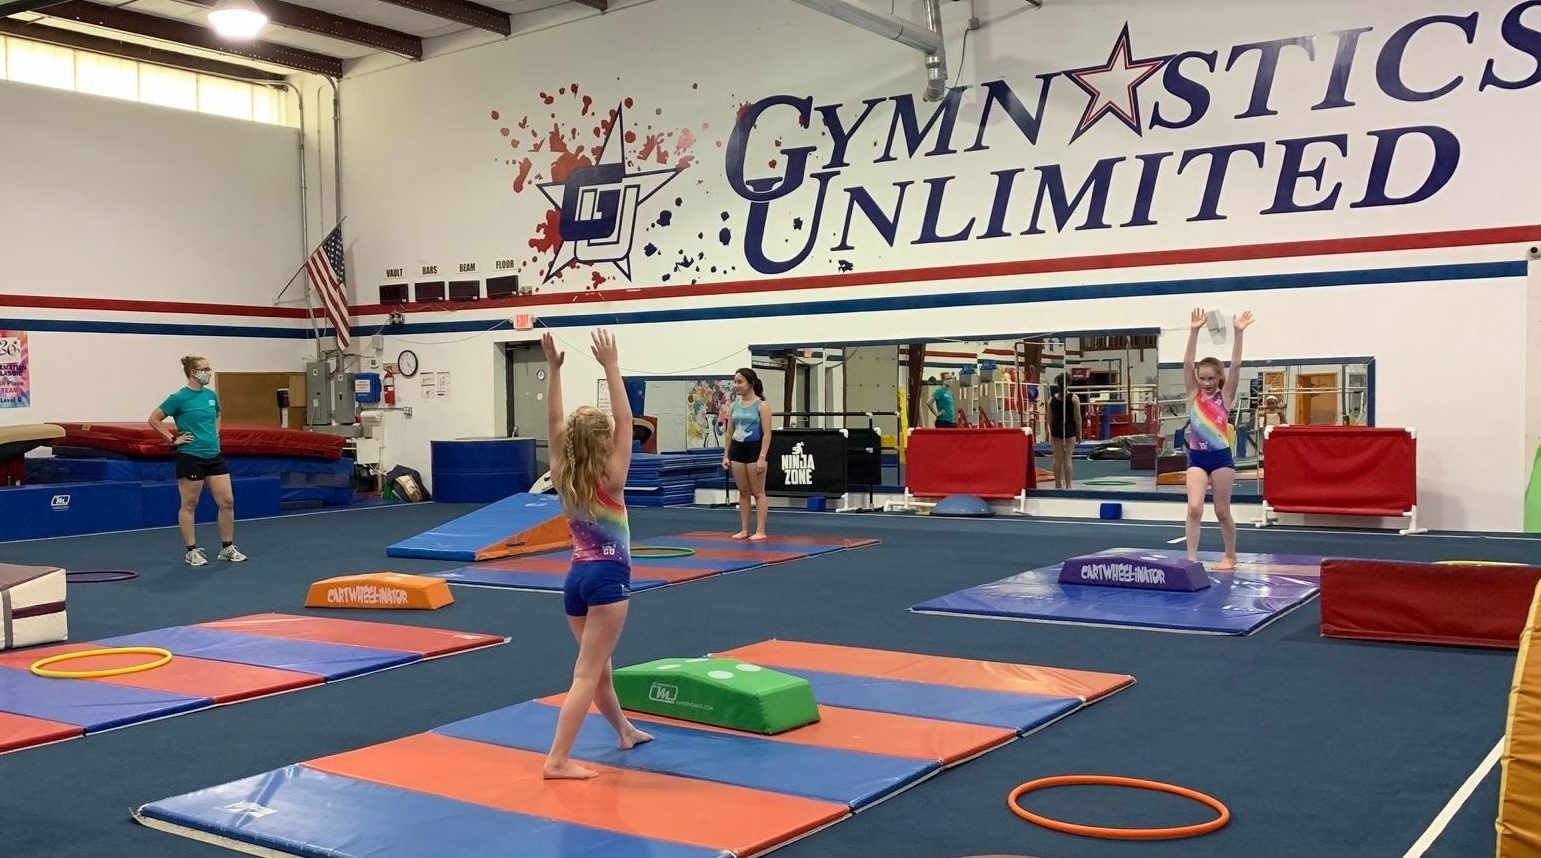 Gymnastics Unlimited Flemington NJ